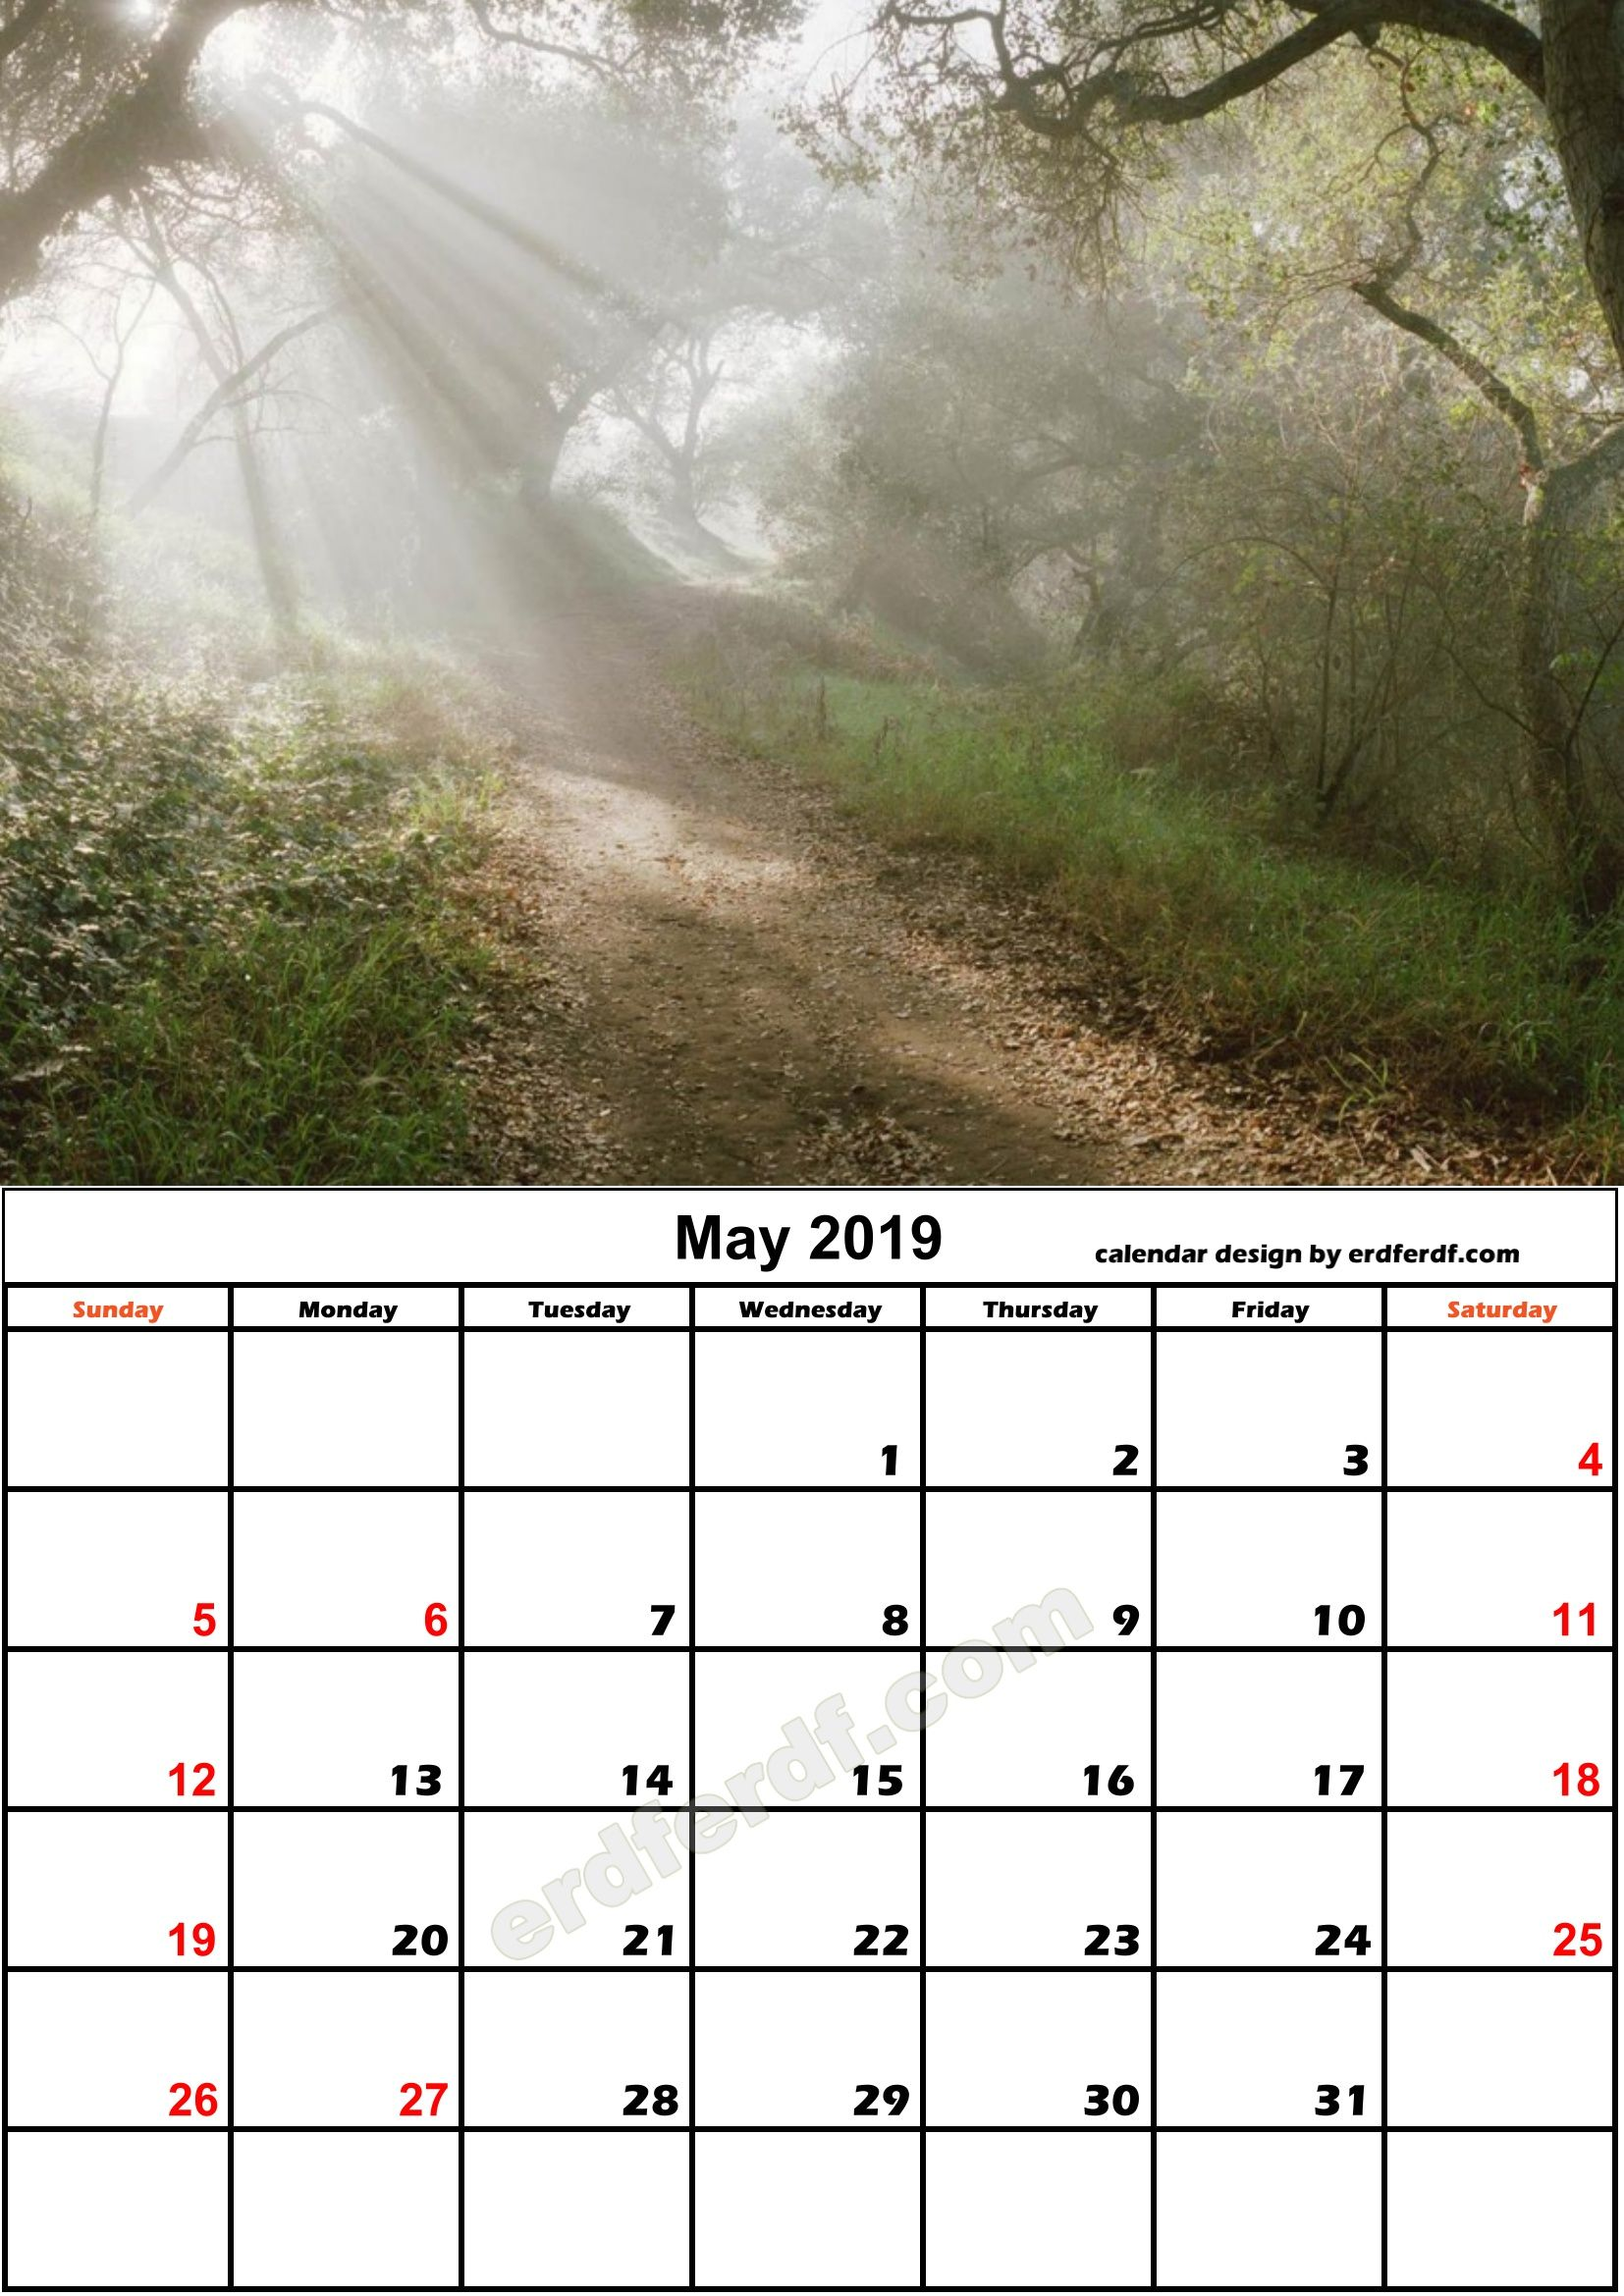 5 May Nature Calendar Monthly 2019 Free Download Monthly Calendar